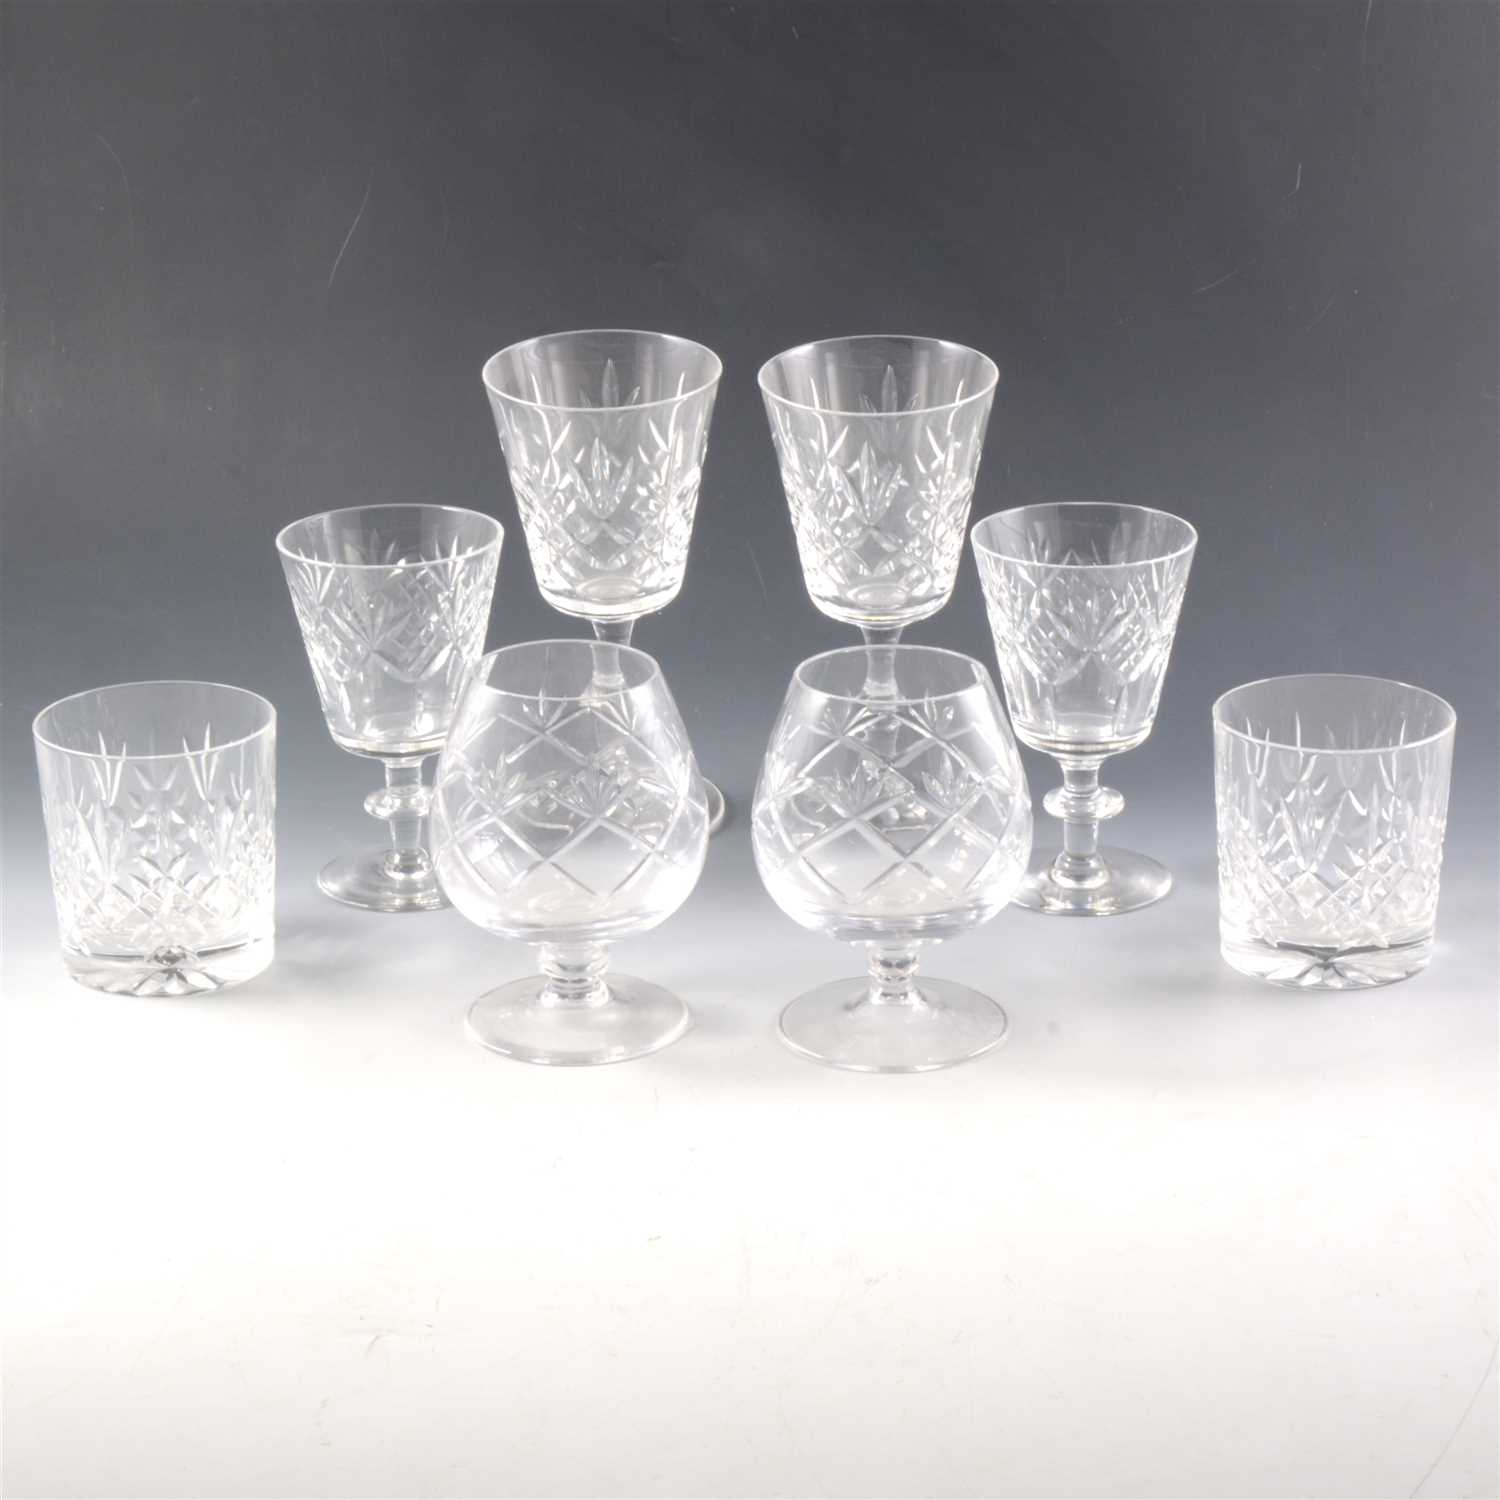 Lot 18-A set of six Edinburgh crystal wine glasses, and other glassware